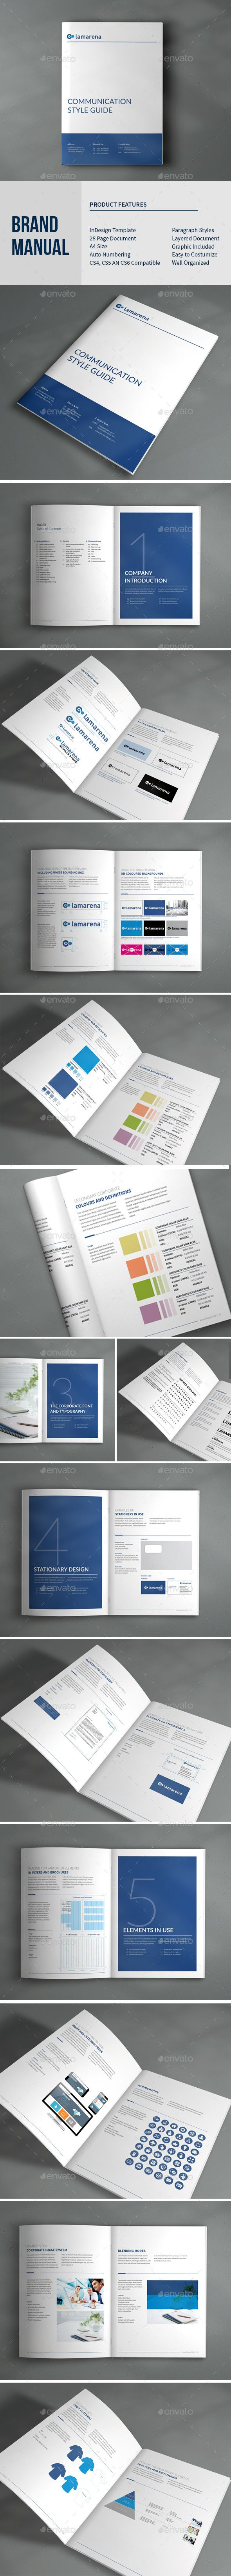 Brand Manual Brochure Template InDesign INDD #design Download: http://graphicriver.net/item/brand-manual/13109035?ref=ksioks